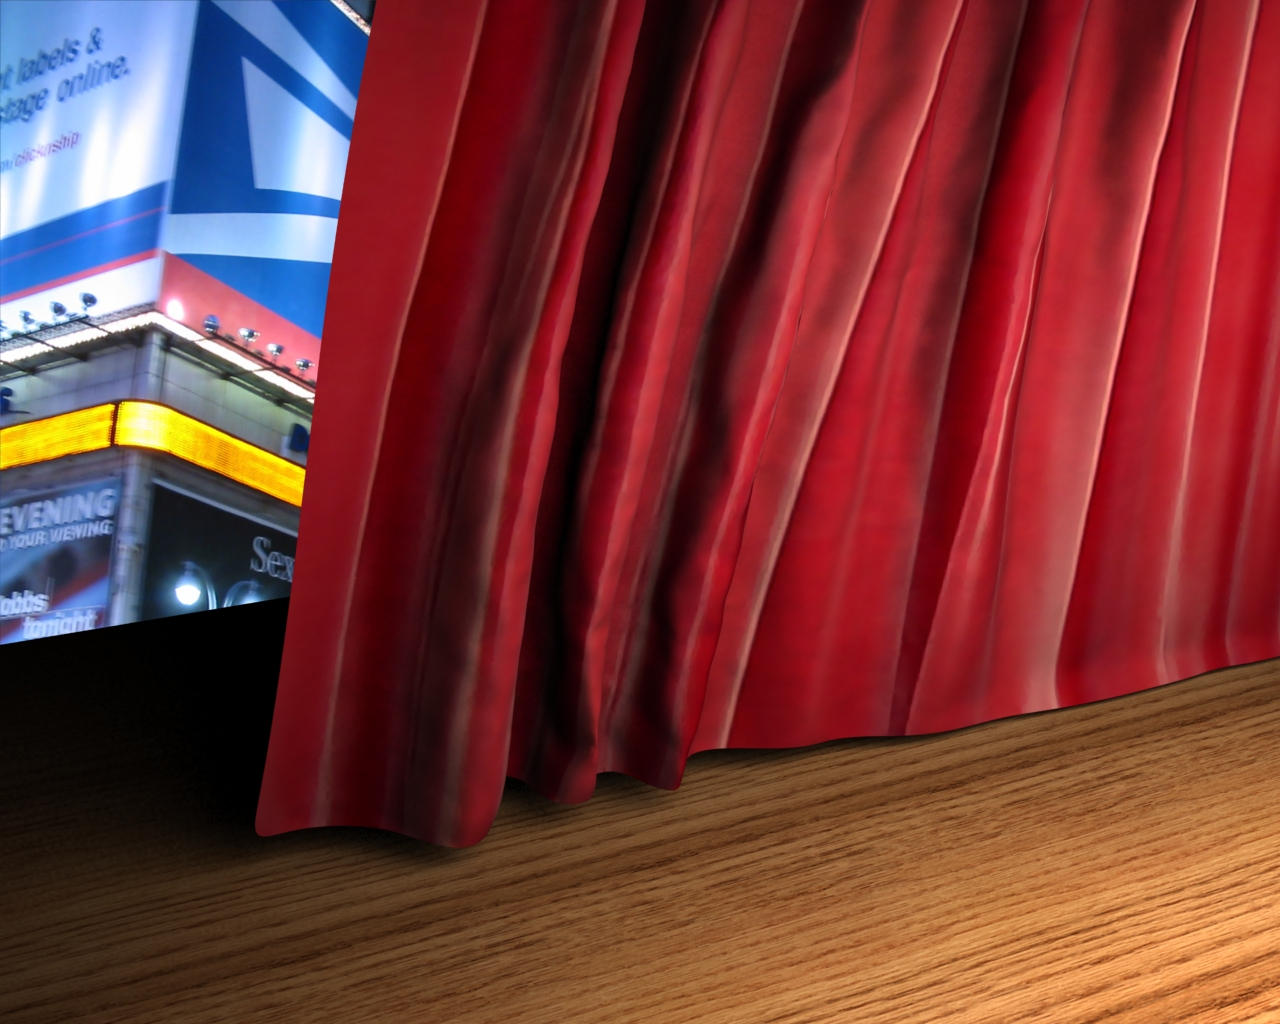 Theatre Curtains Opening Movie by digitalresource